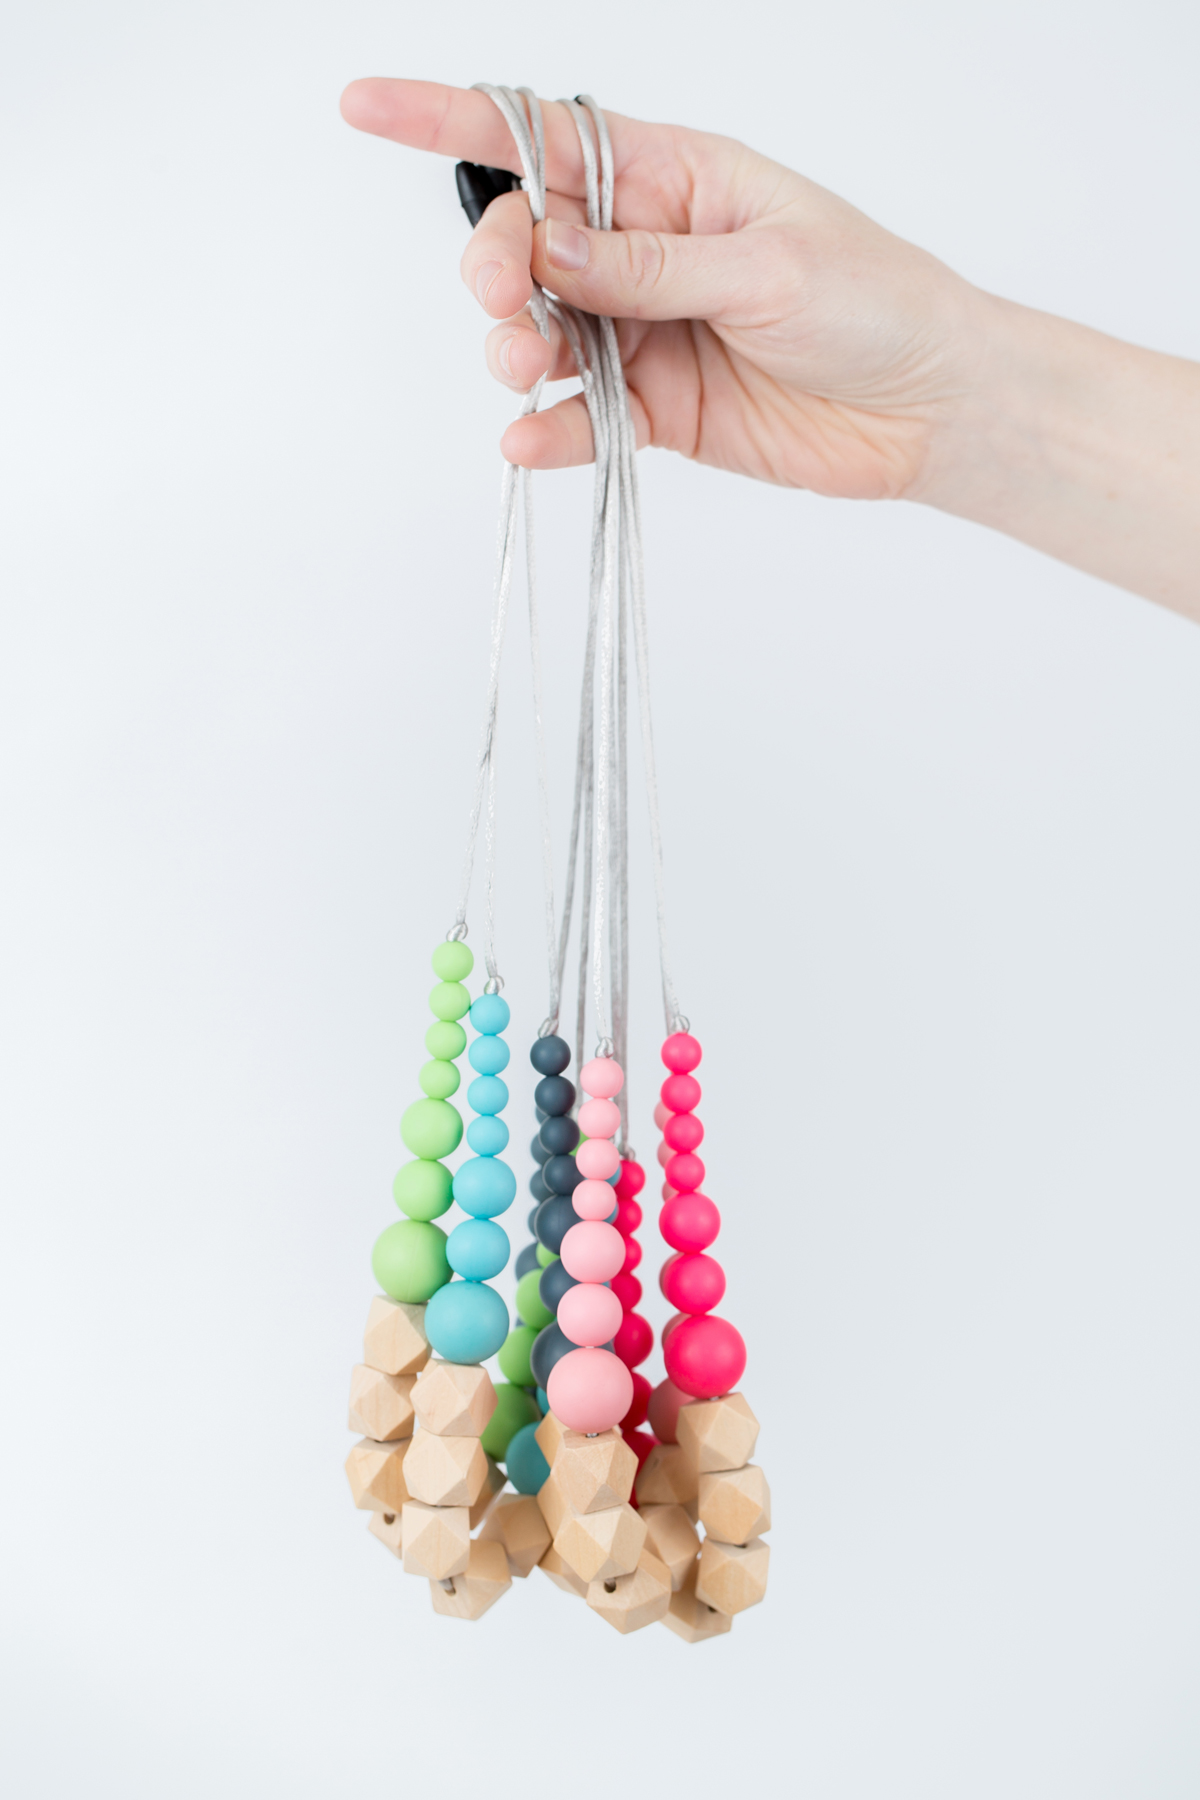 A colourful array of timber and silicone teething necklaces